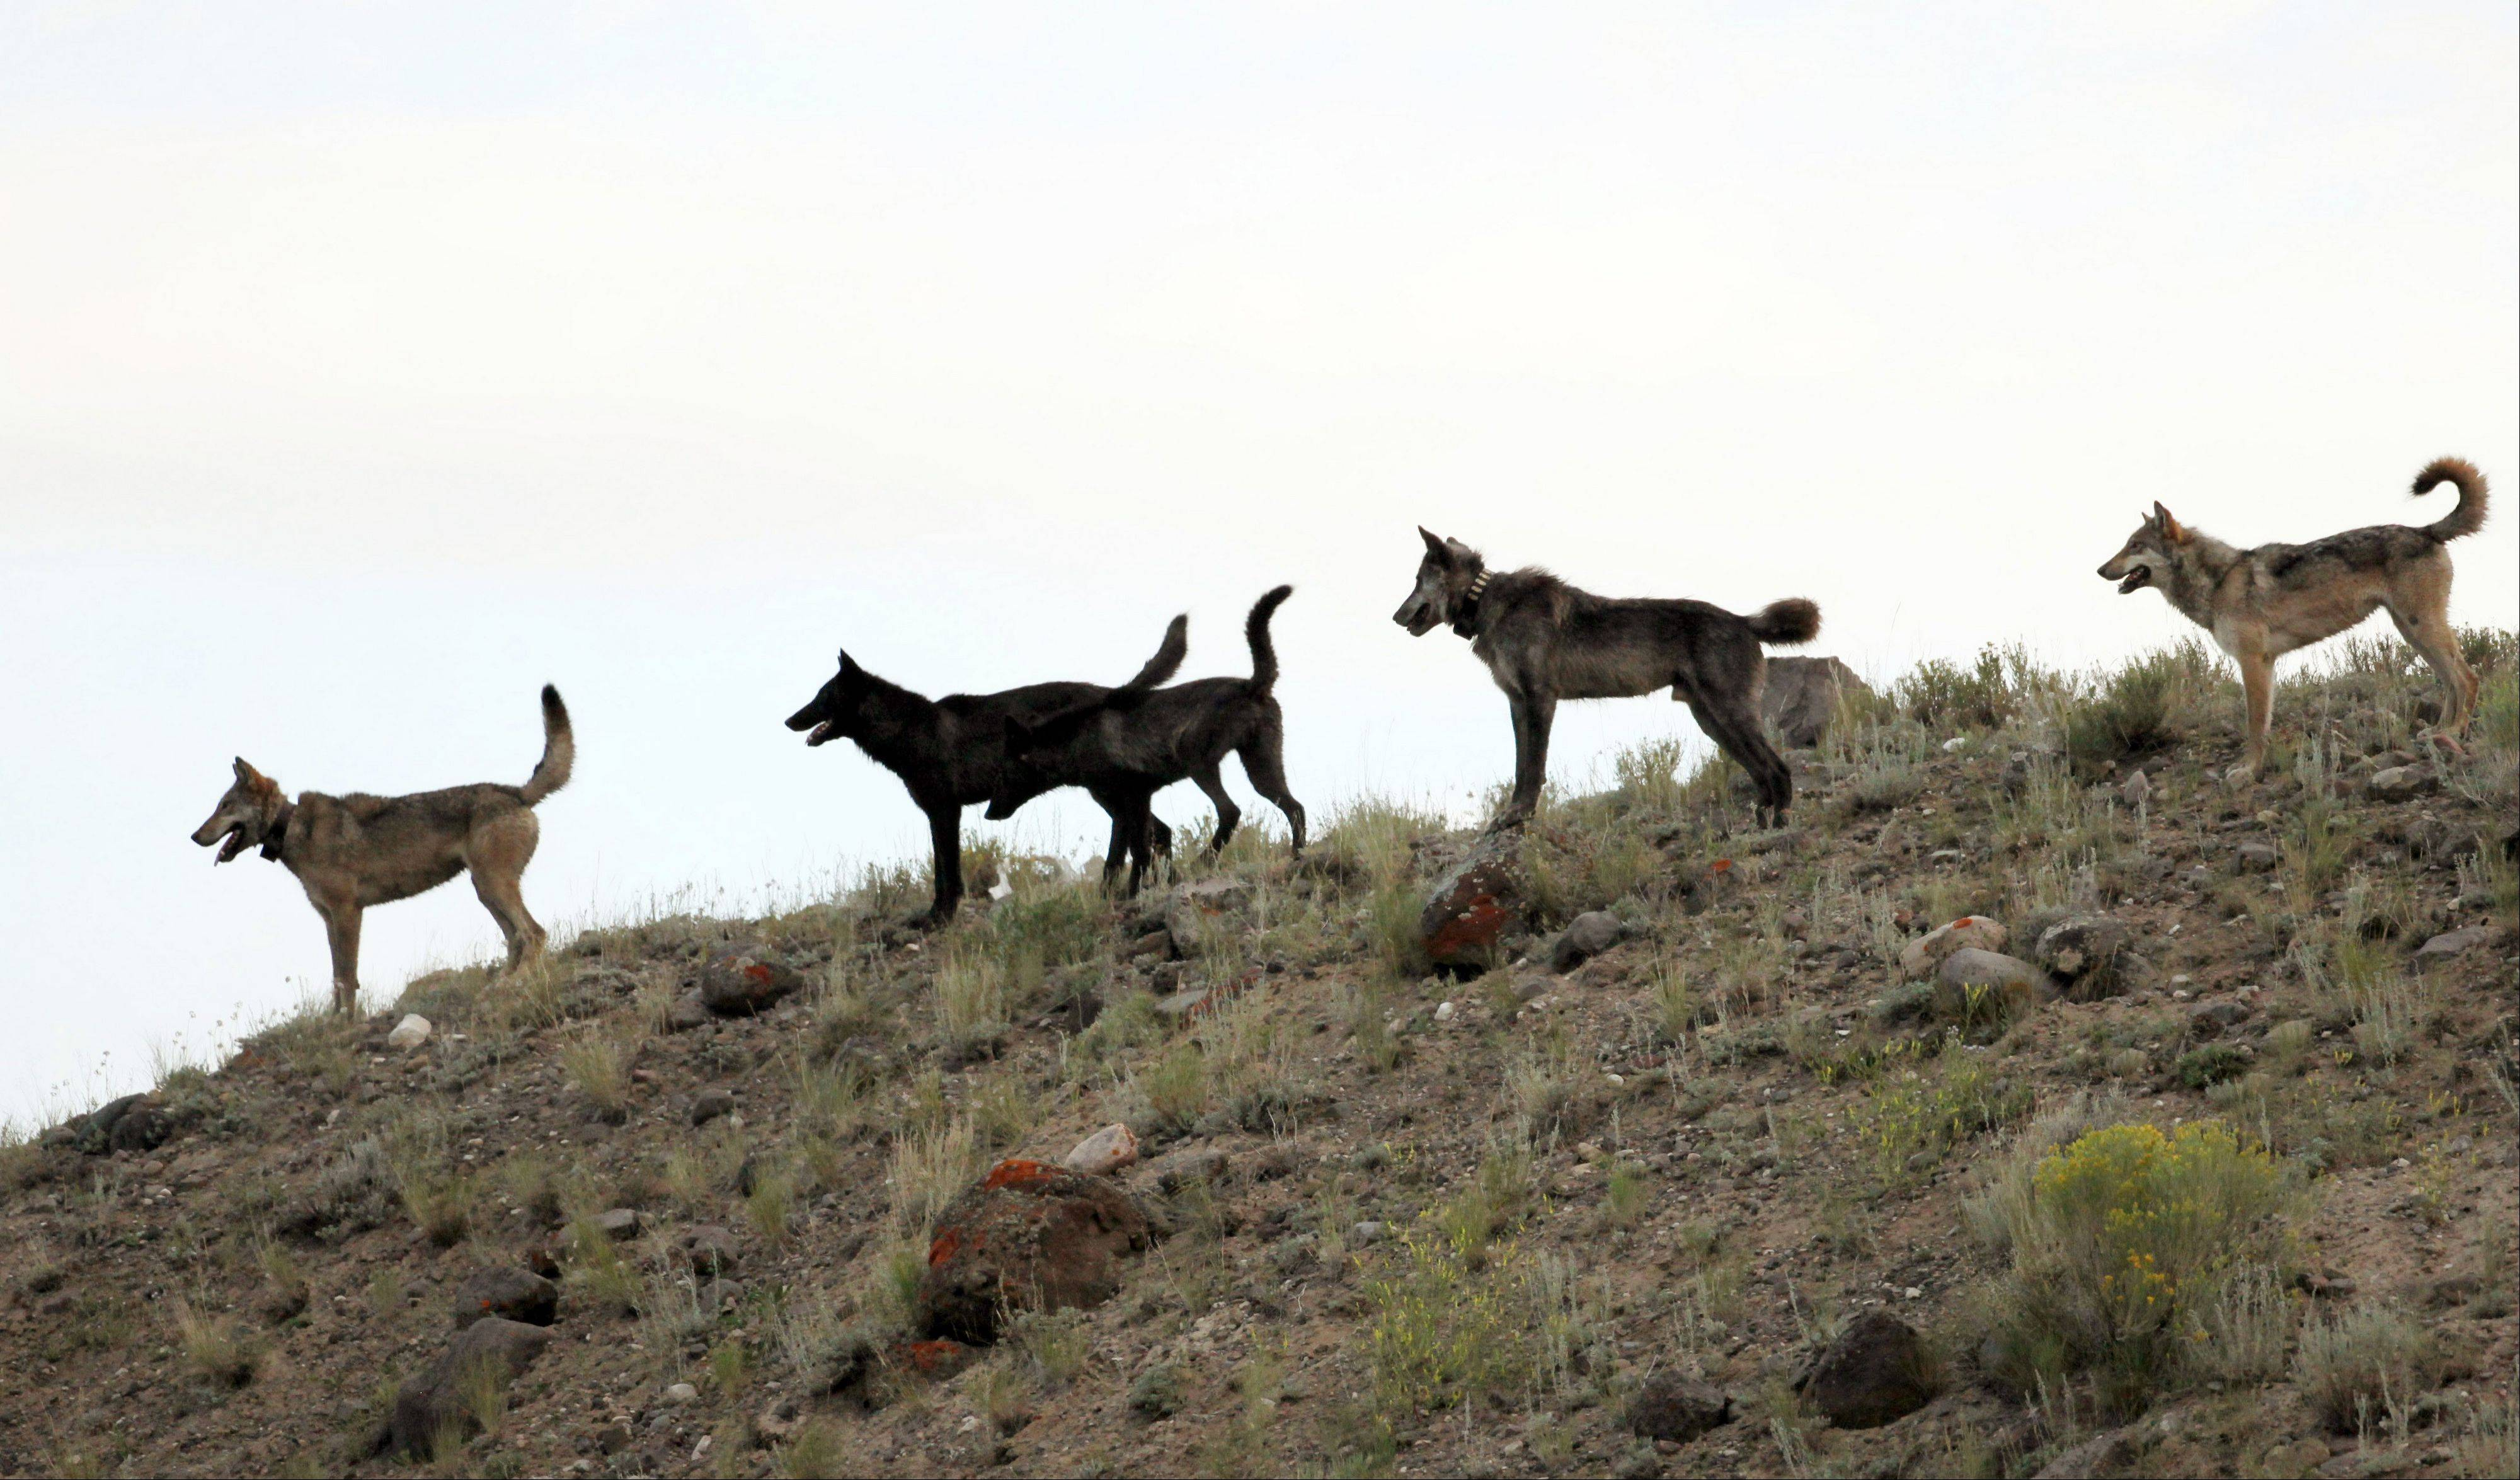 The Lamar Canyon wolf pack moves on a hillside in Yellowstone National Park, Wyo.